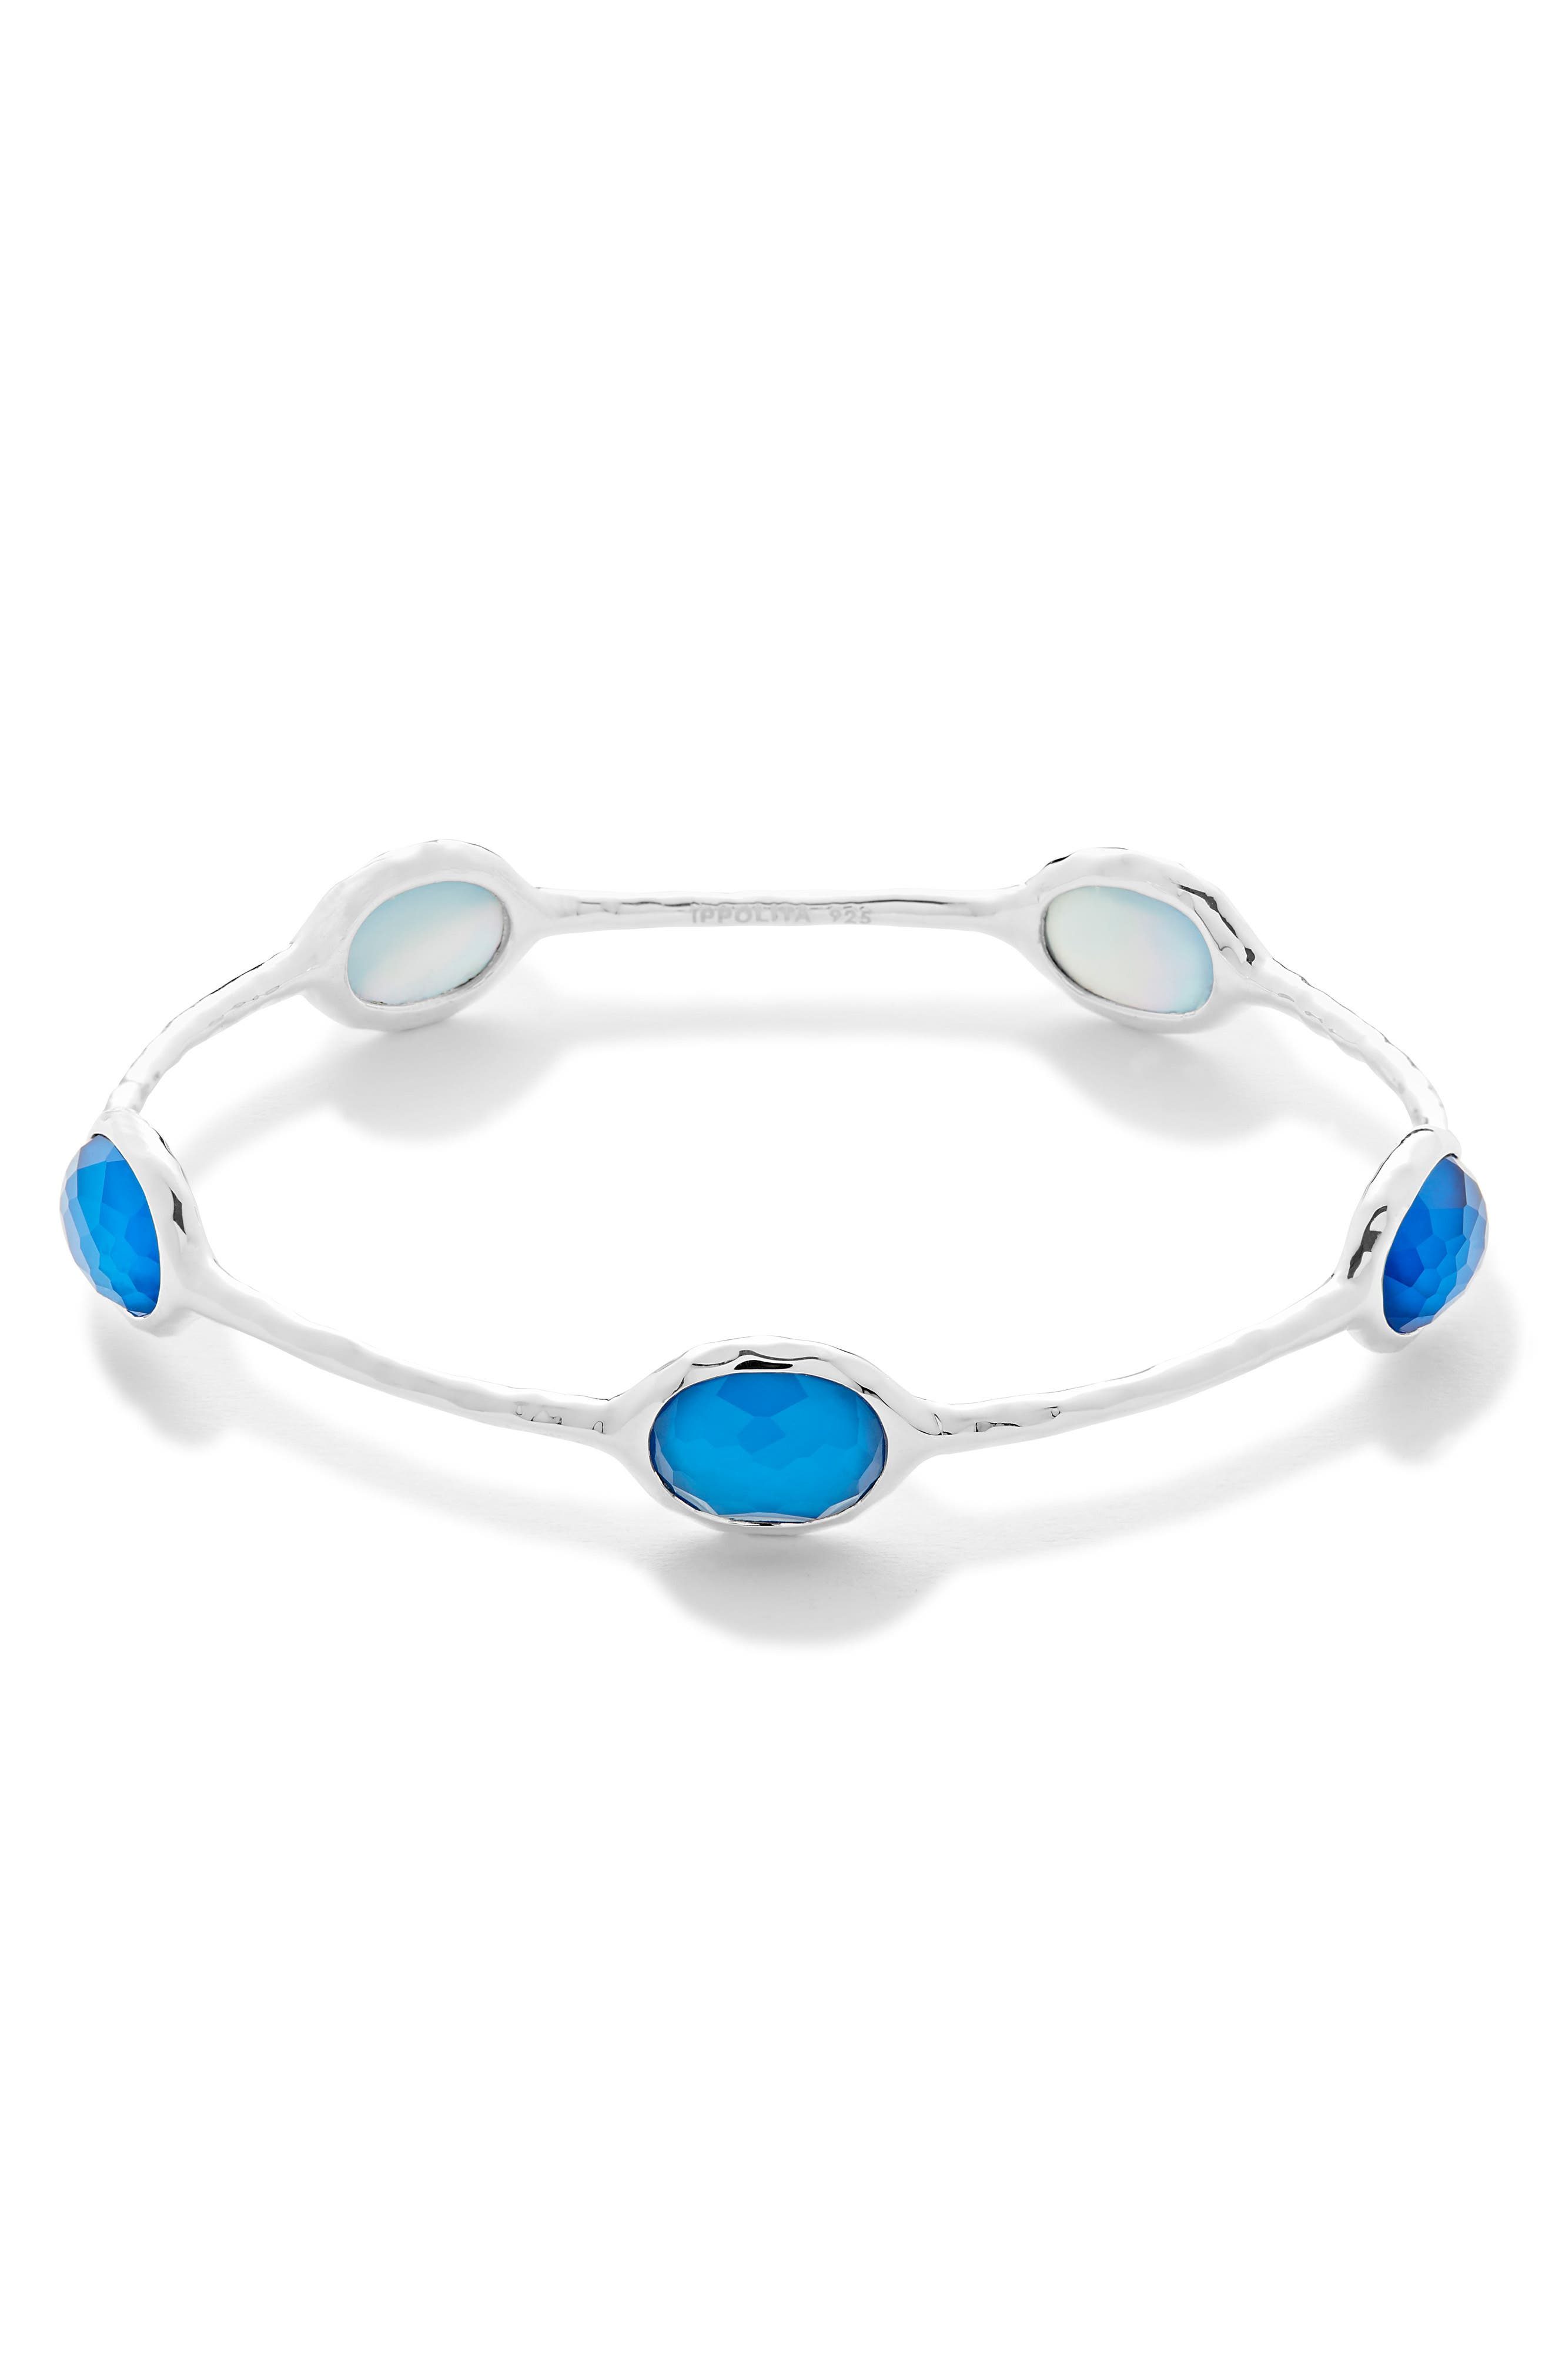 Alternate Image 1 Selected - Ippolita 'Wonderland' 5-Station Bangle